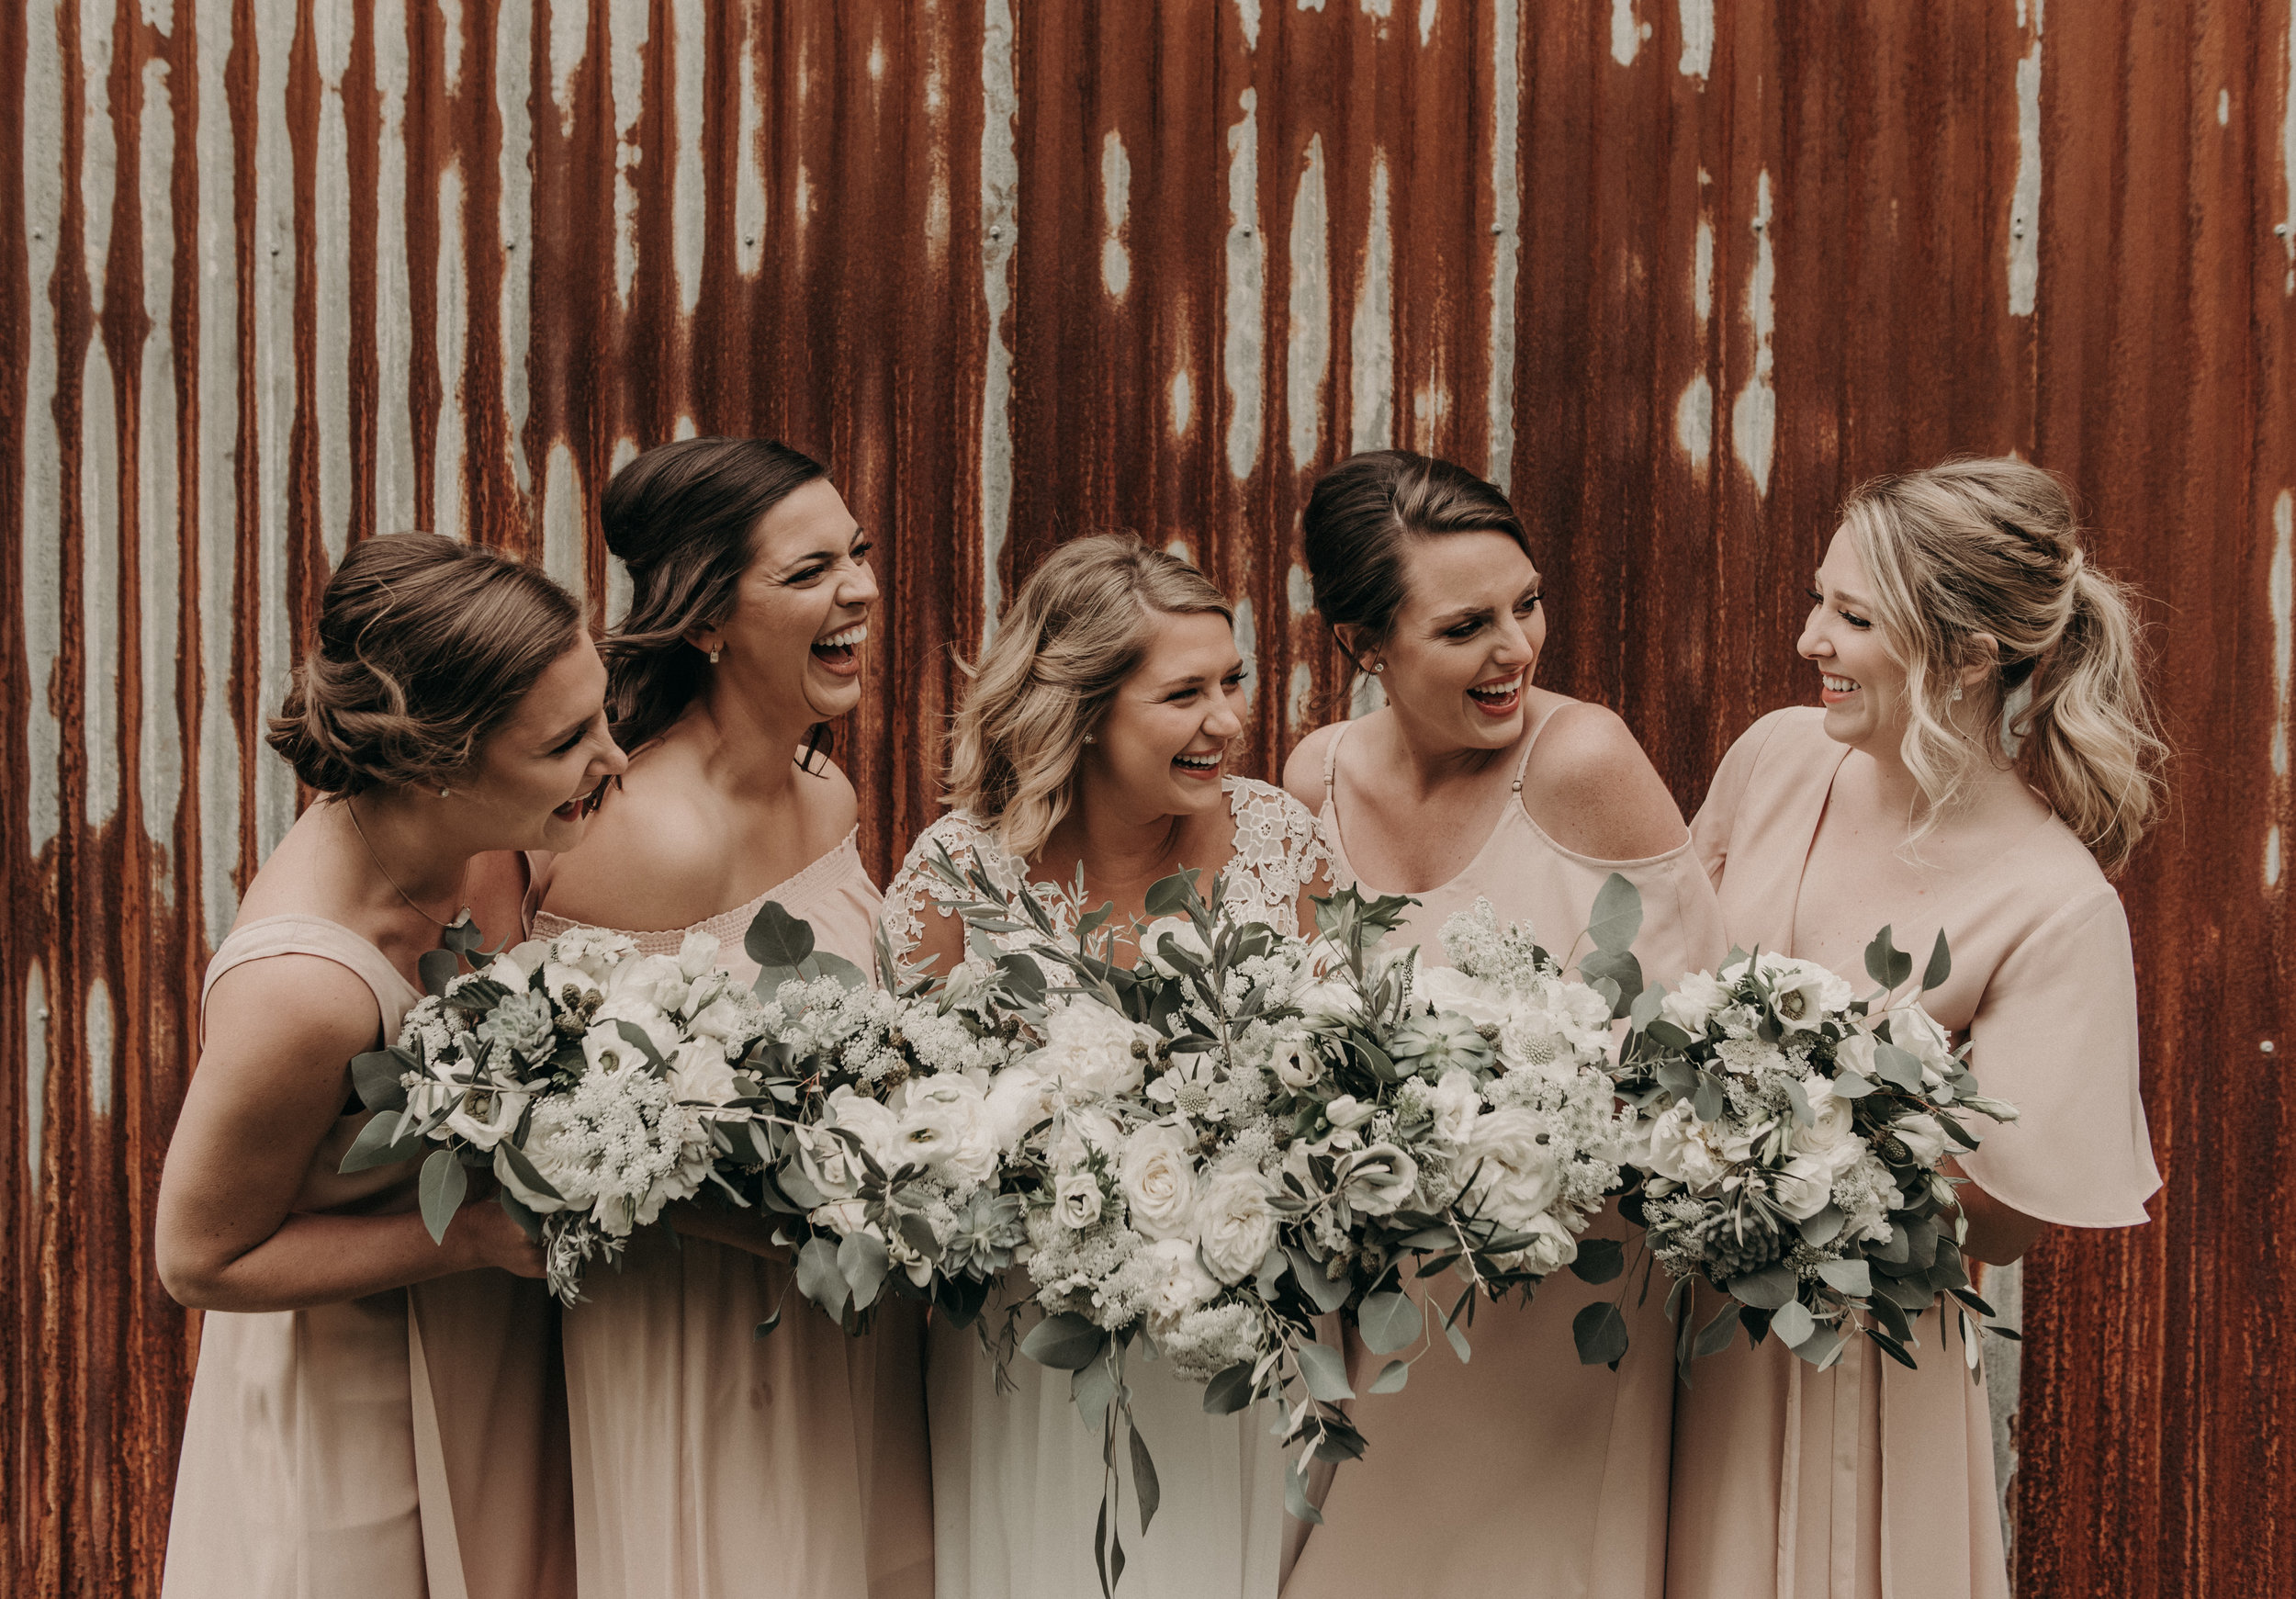 Bohemian style, wildflower inspired bridal and bridesmaid bouquets with white garden roses, eucalyptus, anemone, ranunculus at The Creek Haus. Petal Pushers floral event design studio located in Dripping Springs, Texas.